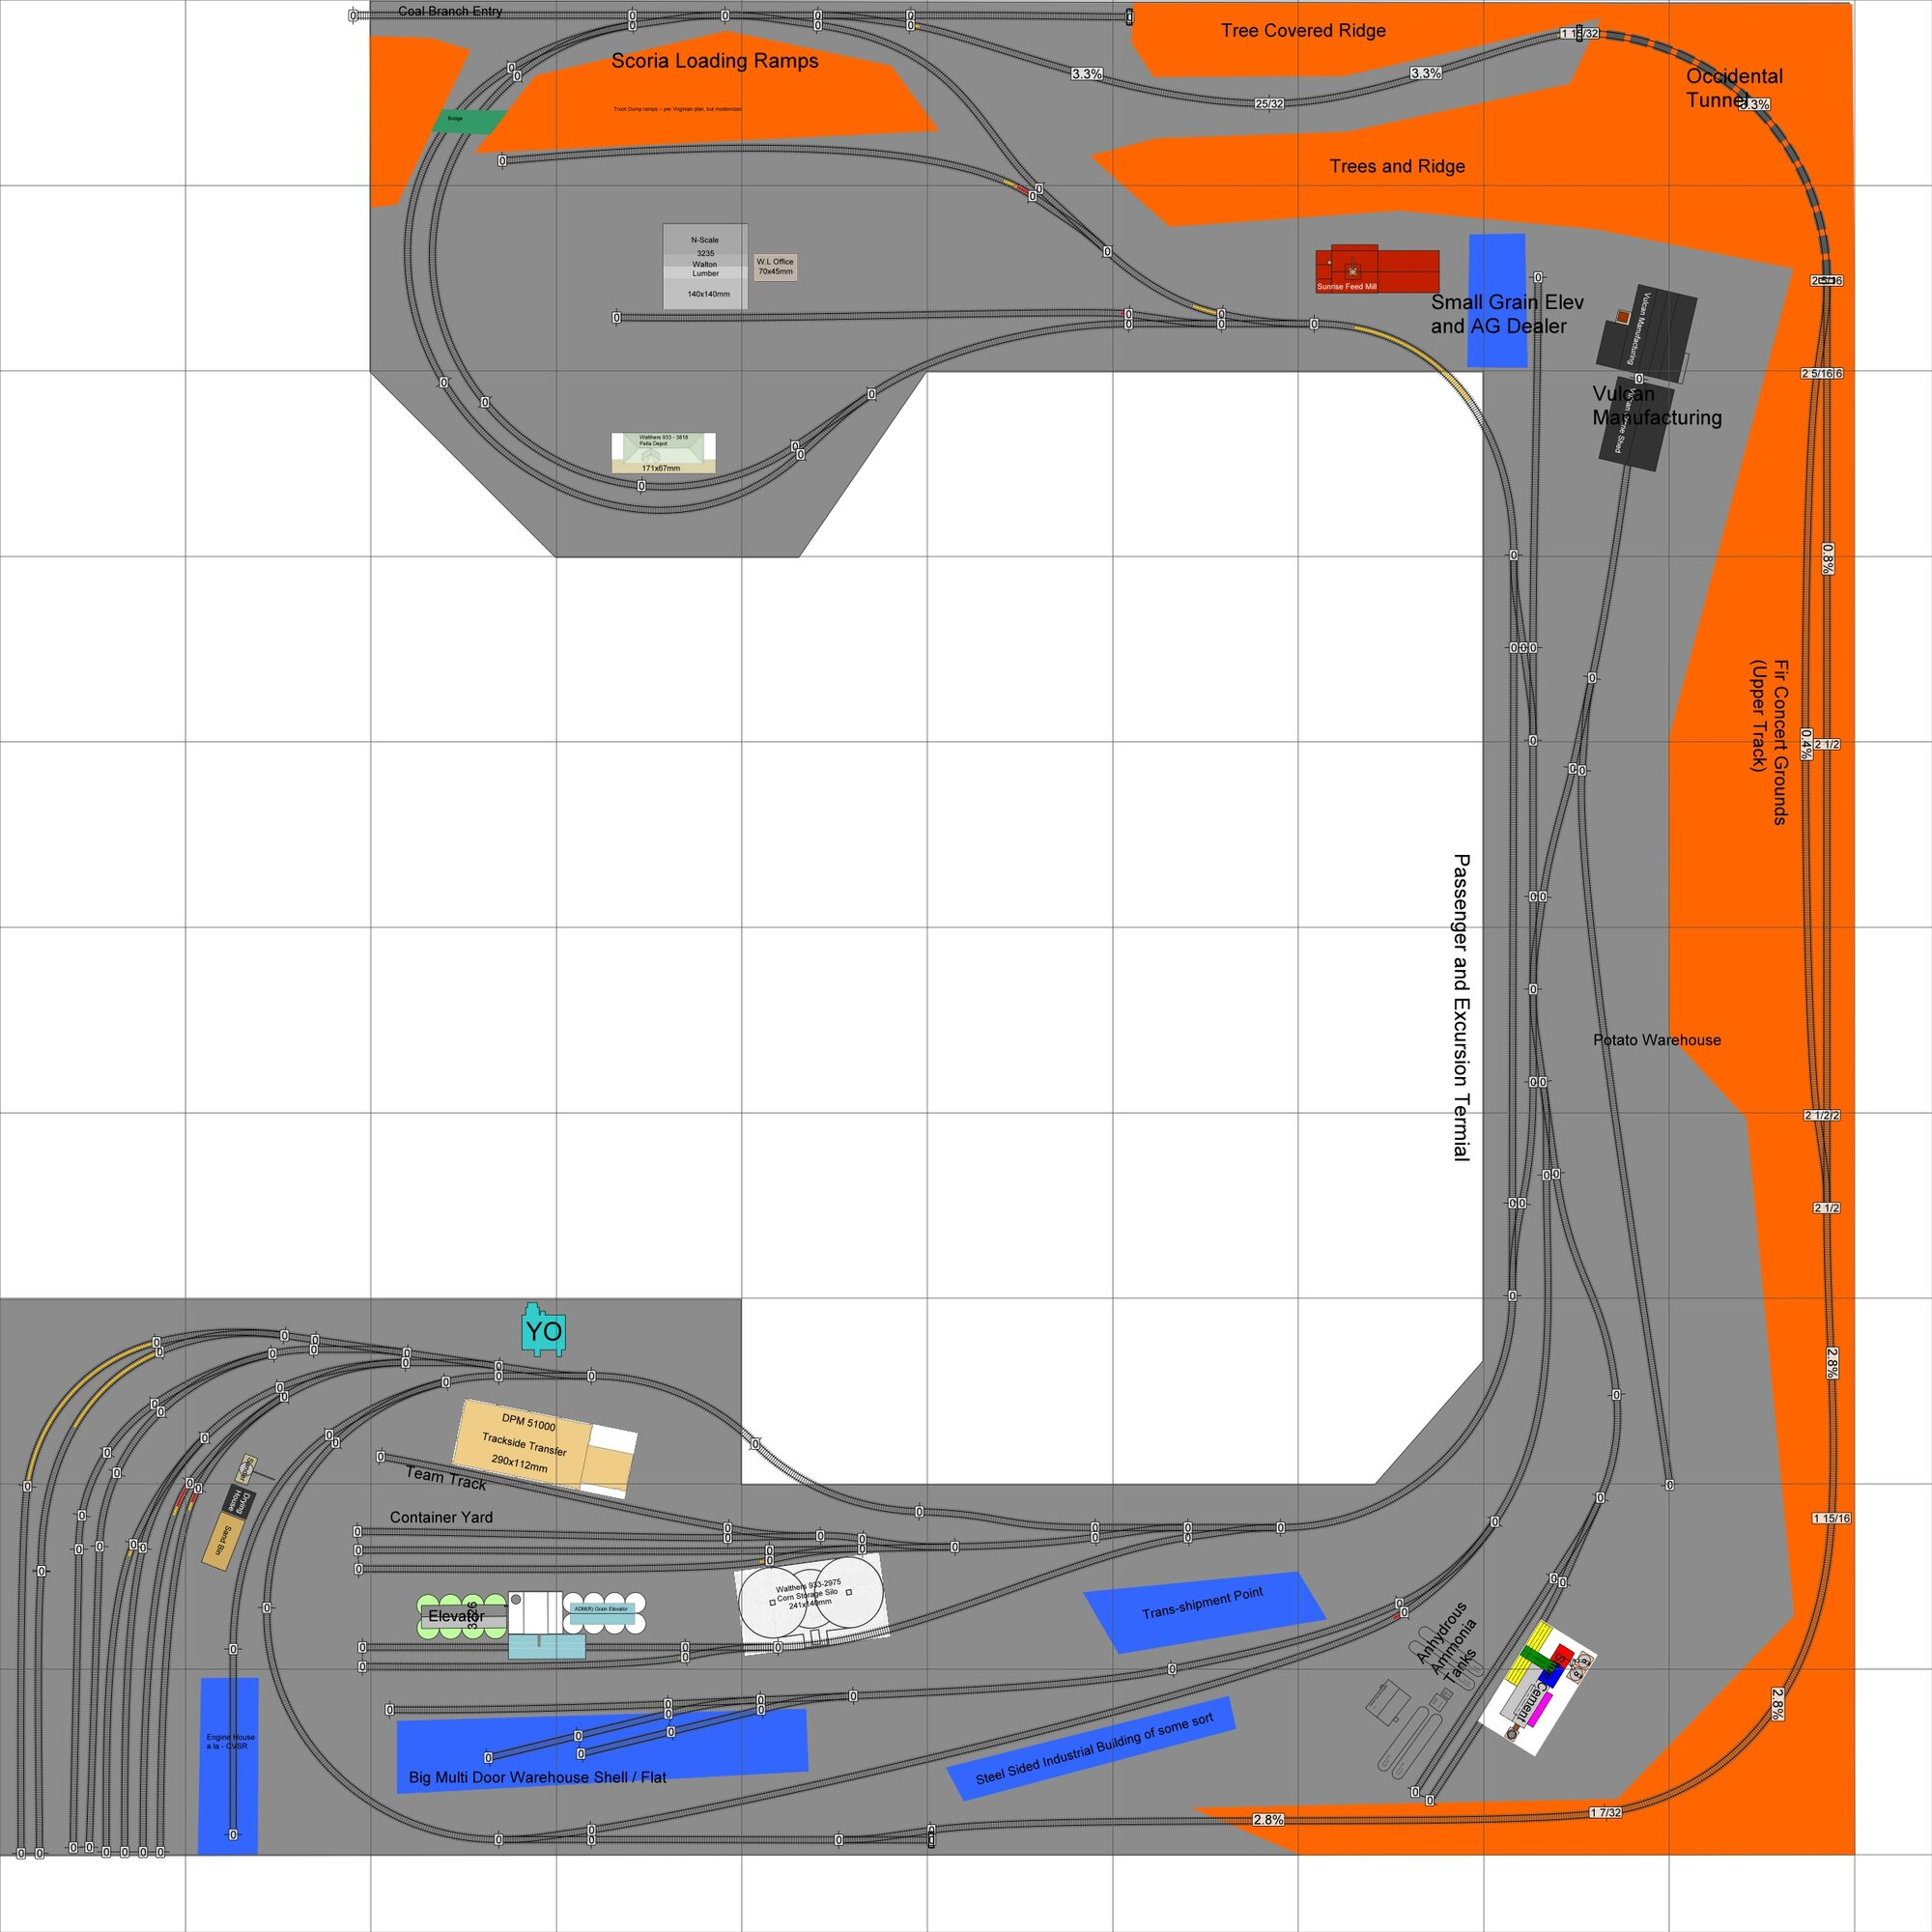 5-13-2020 Track plan with Structures and notations -- No hidden track.jpg